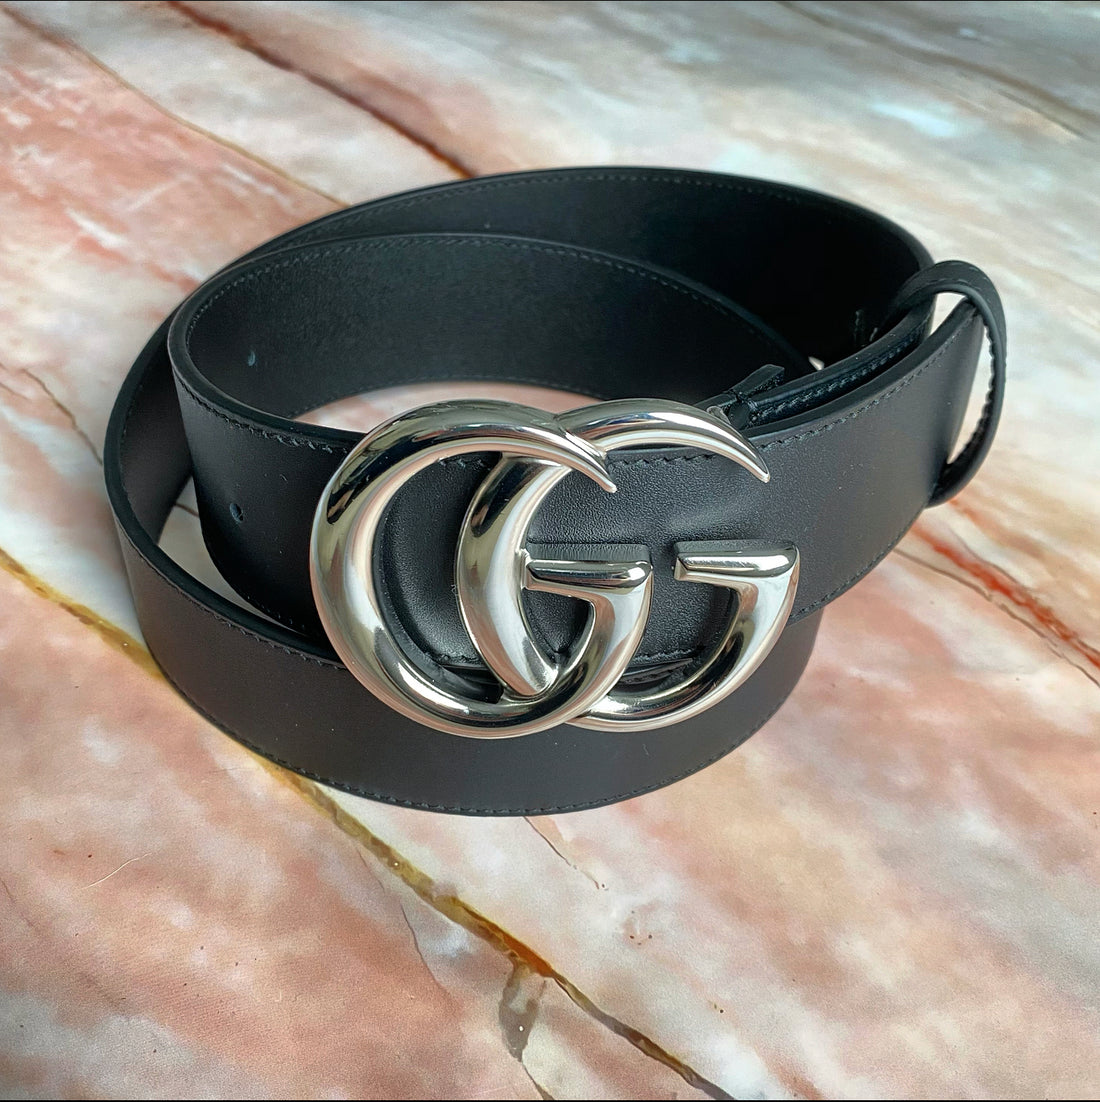 Gucci Marmont Wide Belt with Silvertone Metal Buckle - 32 / 36